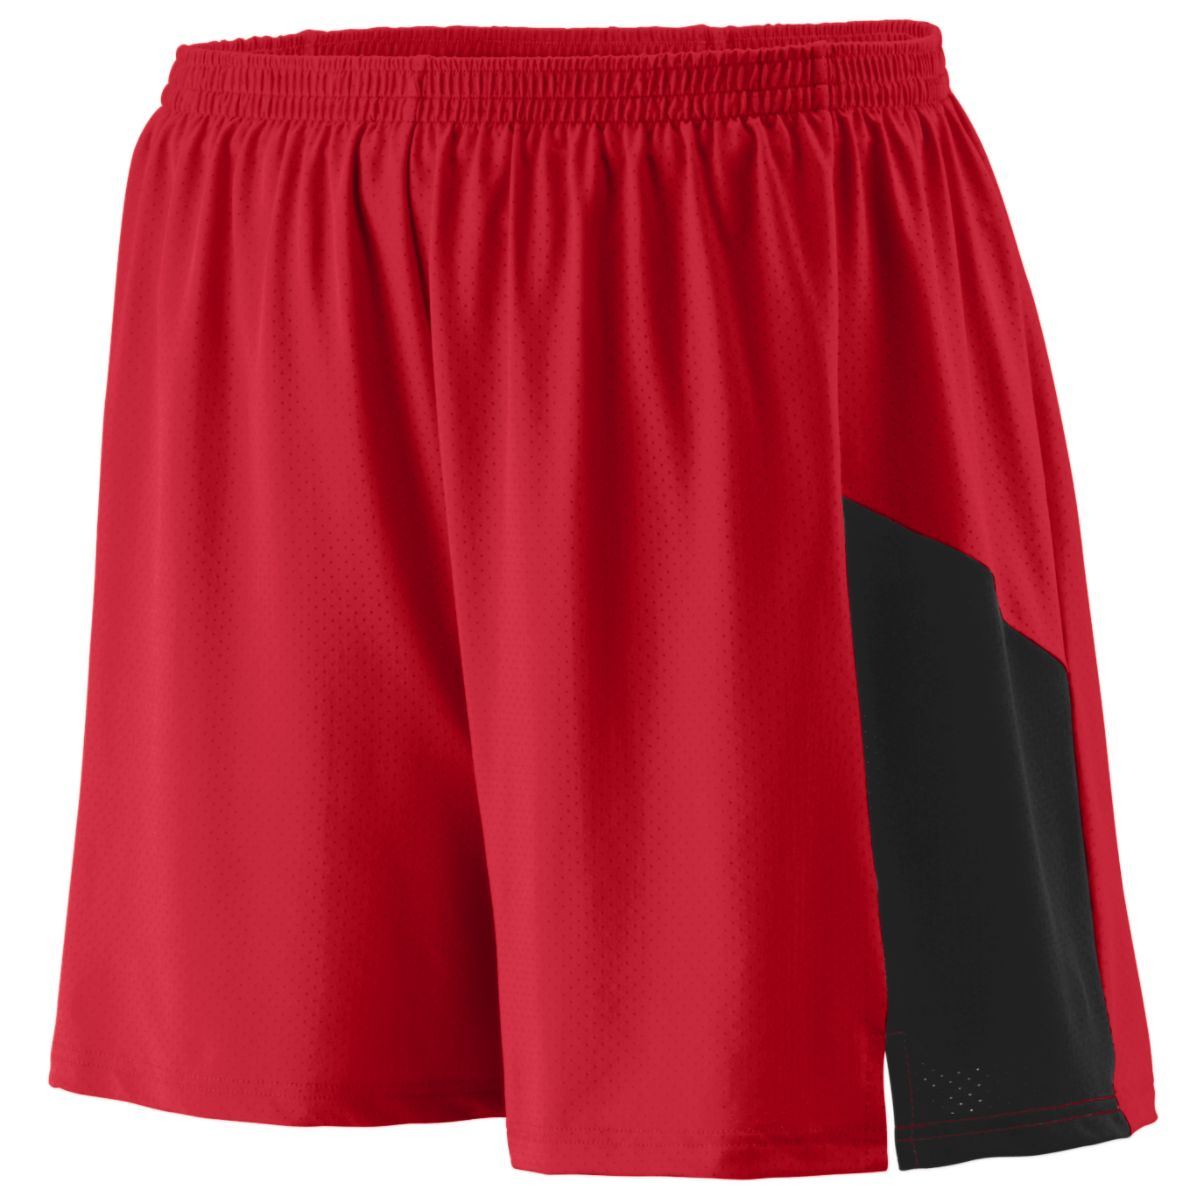 Augusta Youth Sprint Short Red/Blk L - image 1 de 1